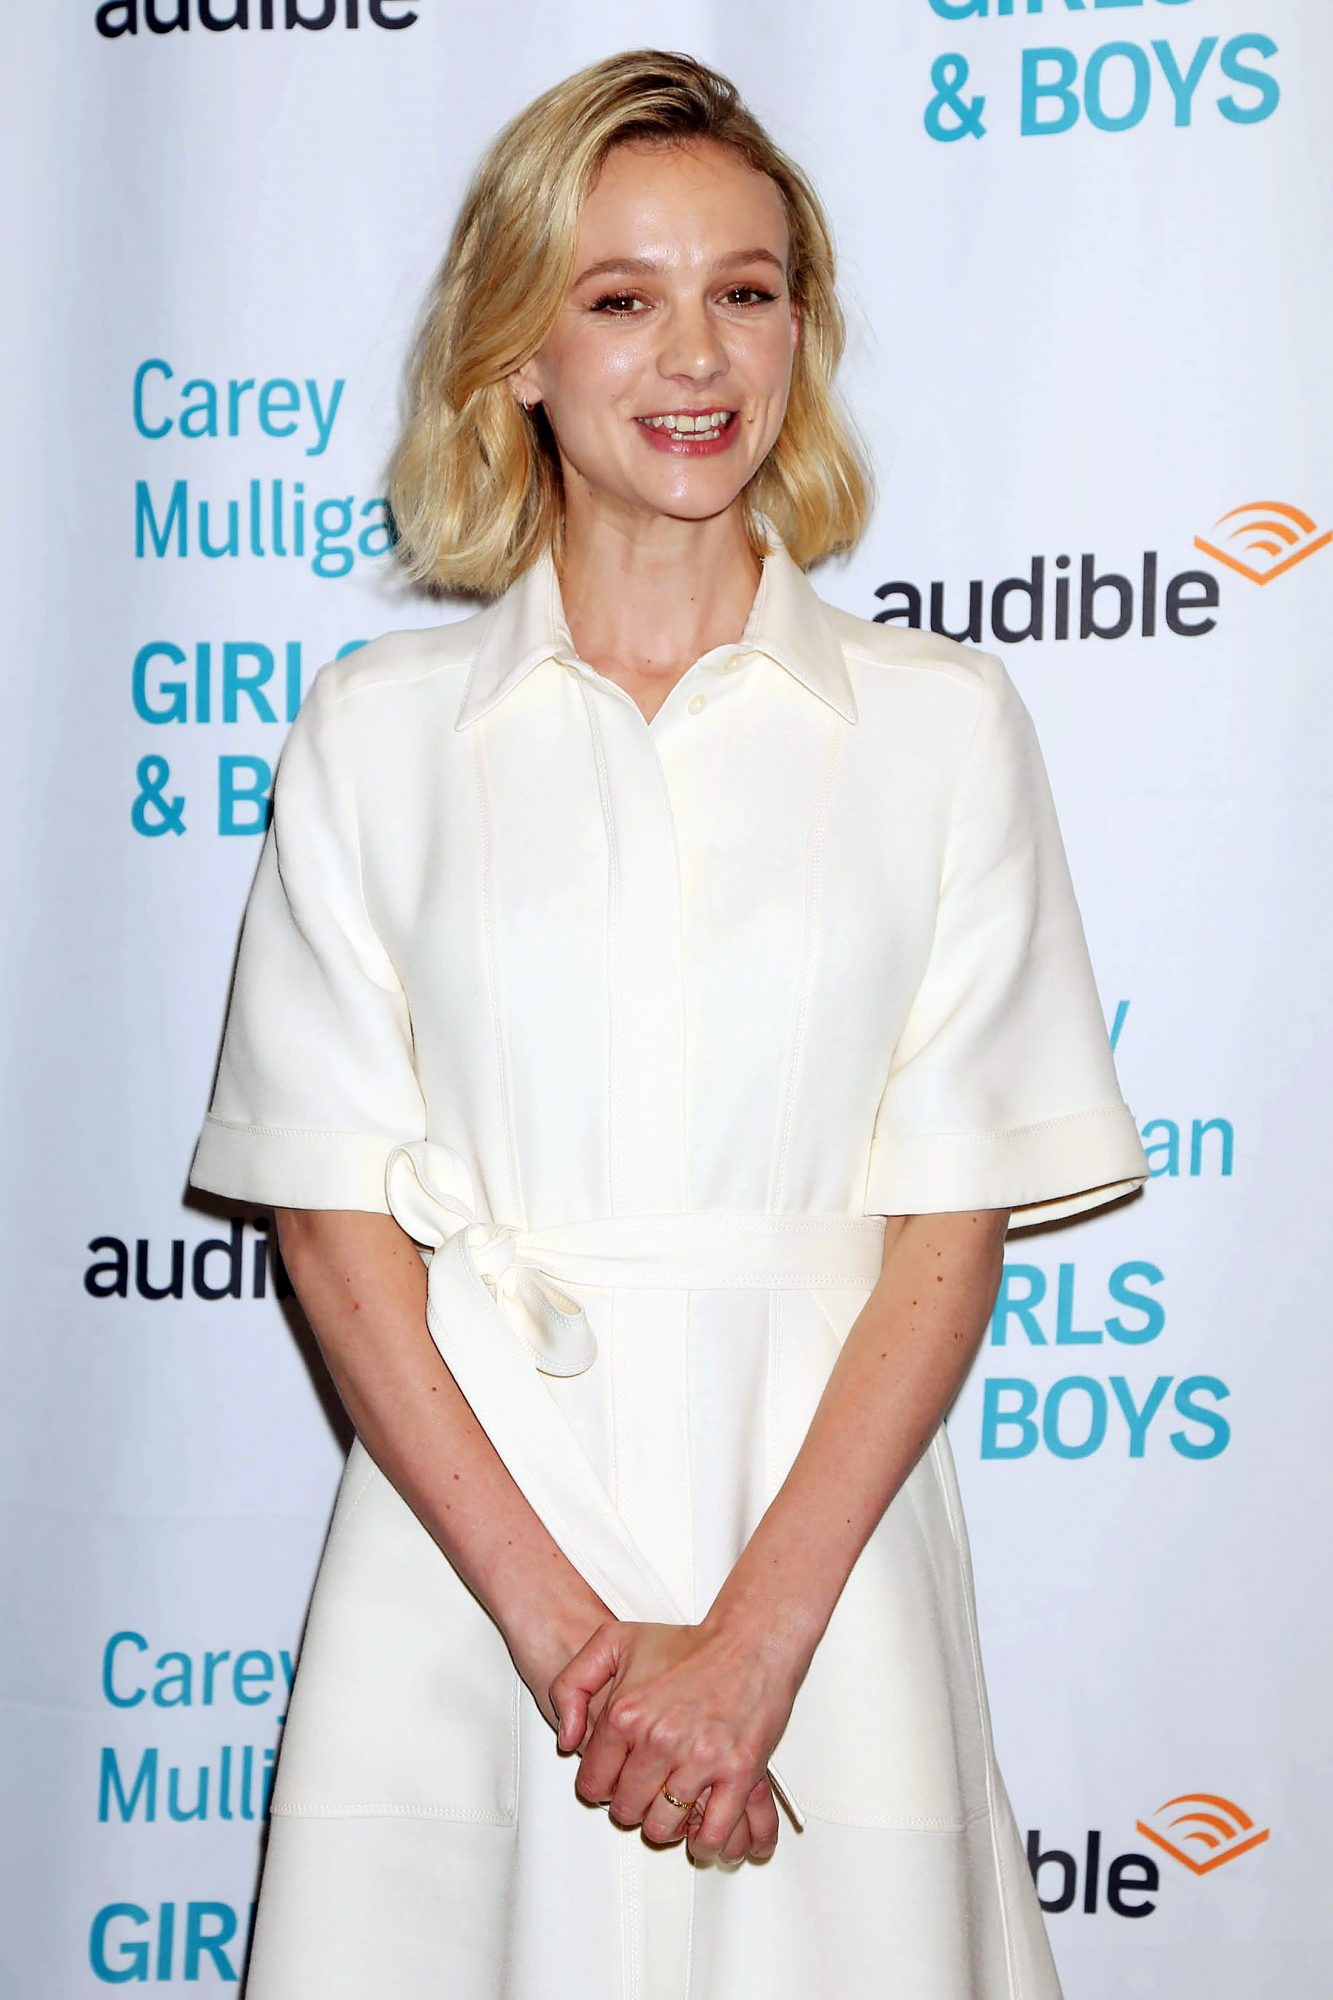 Carey Mulligan Attends a Photocall for her new One-Woman Play Girls & Boys